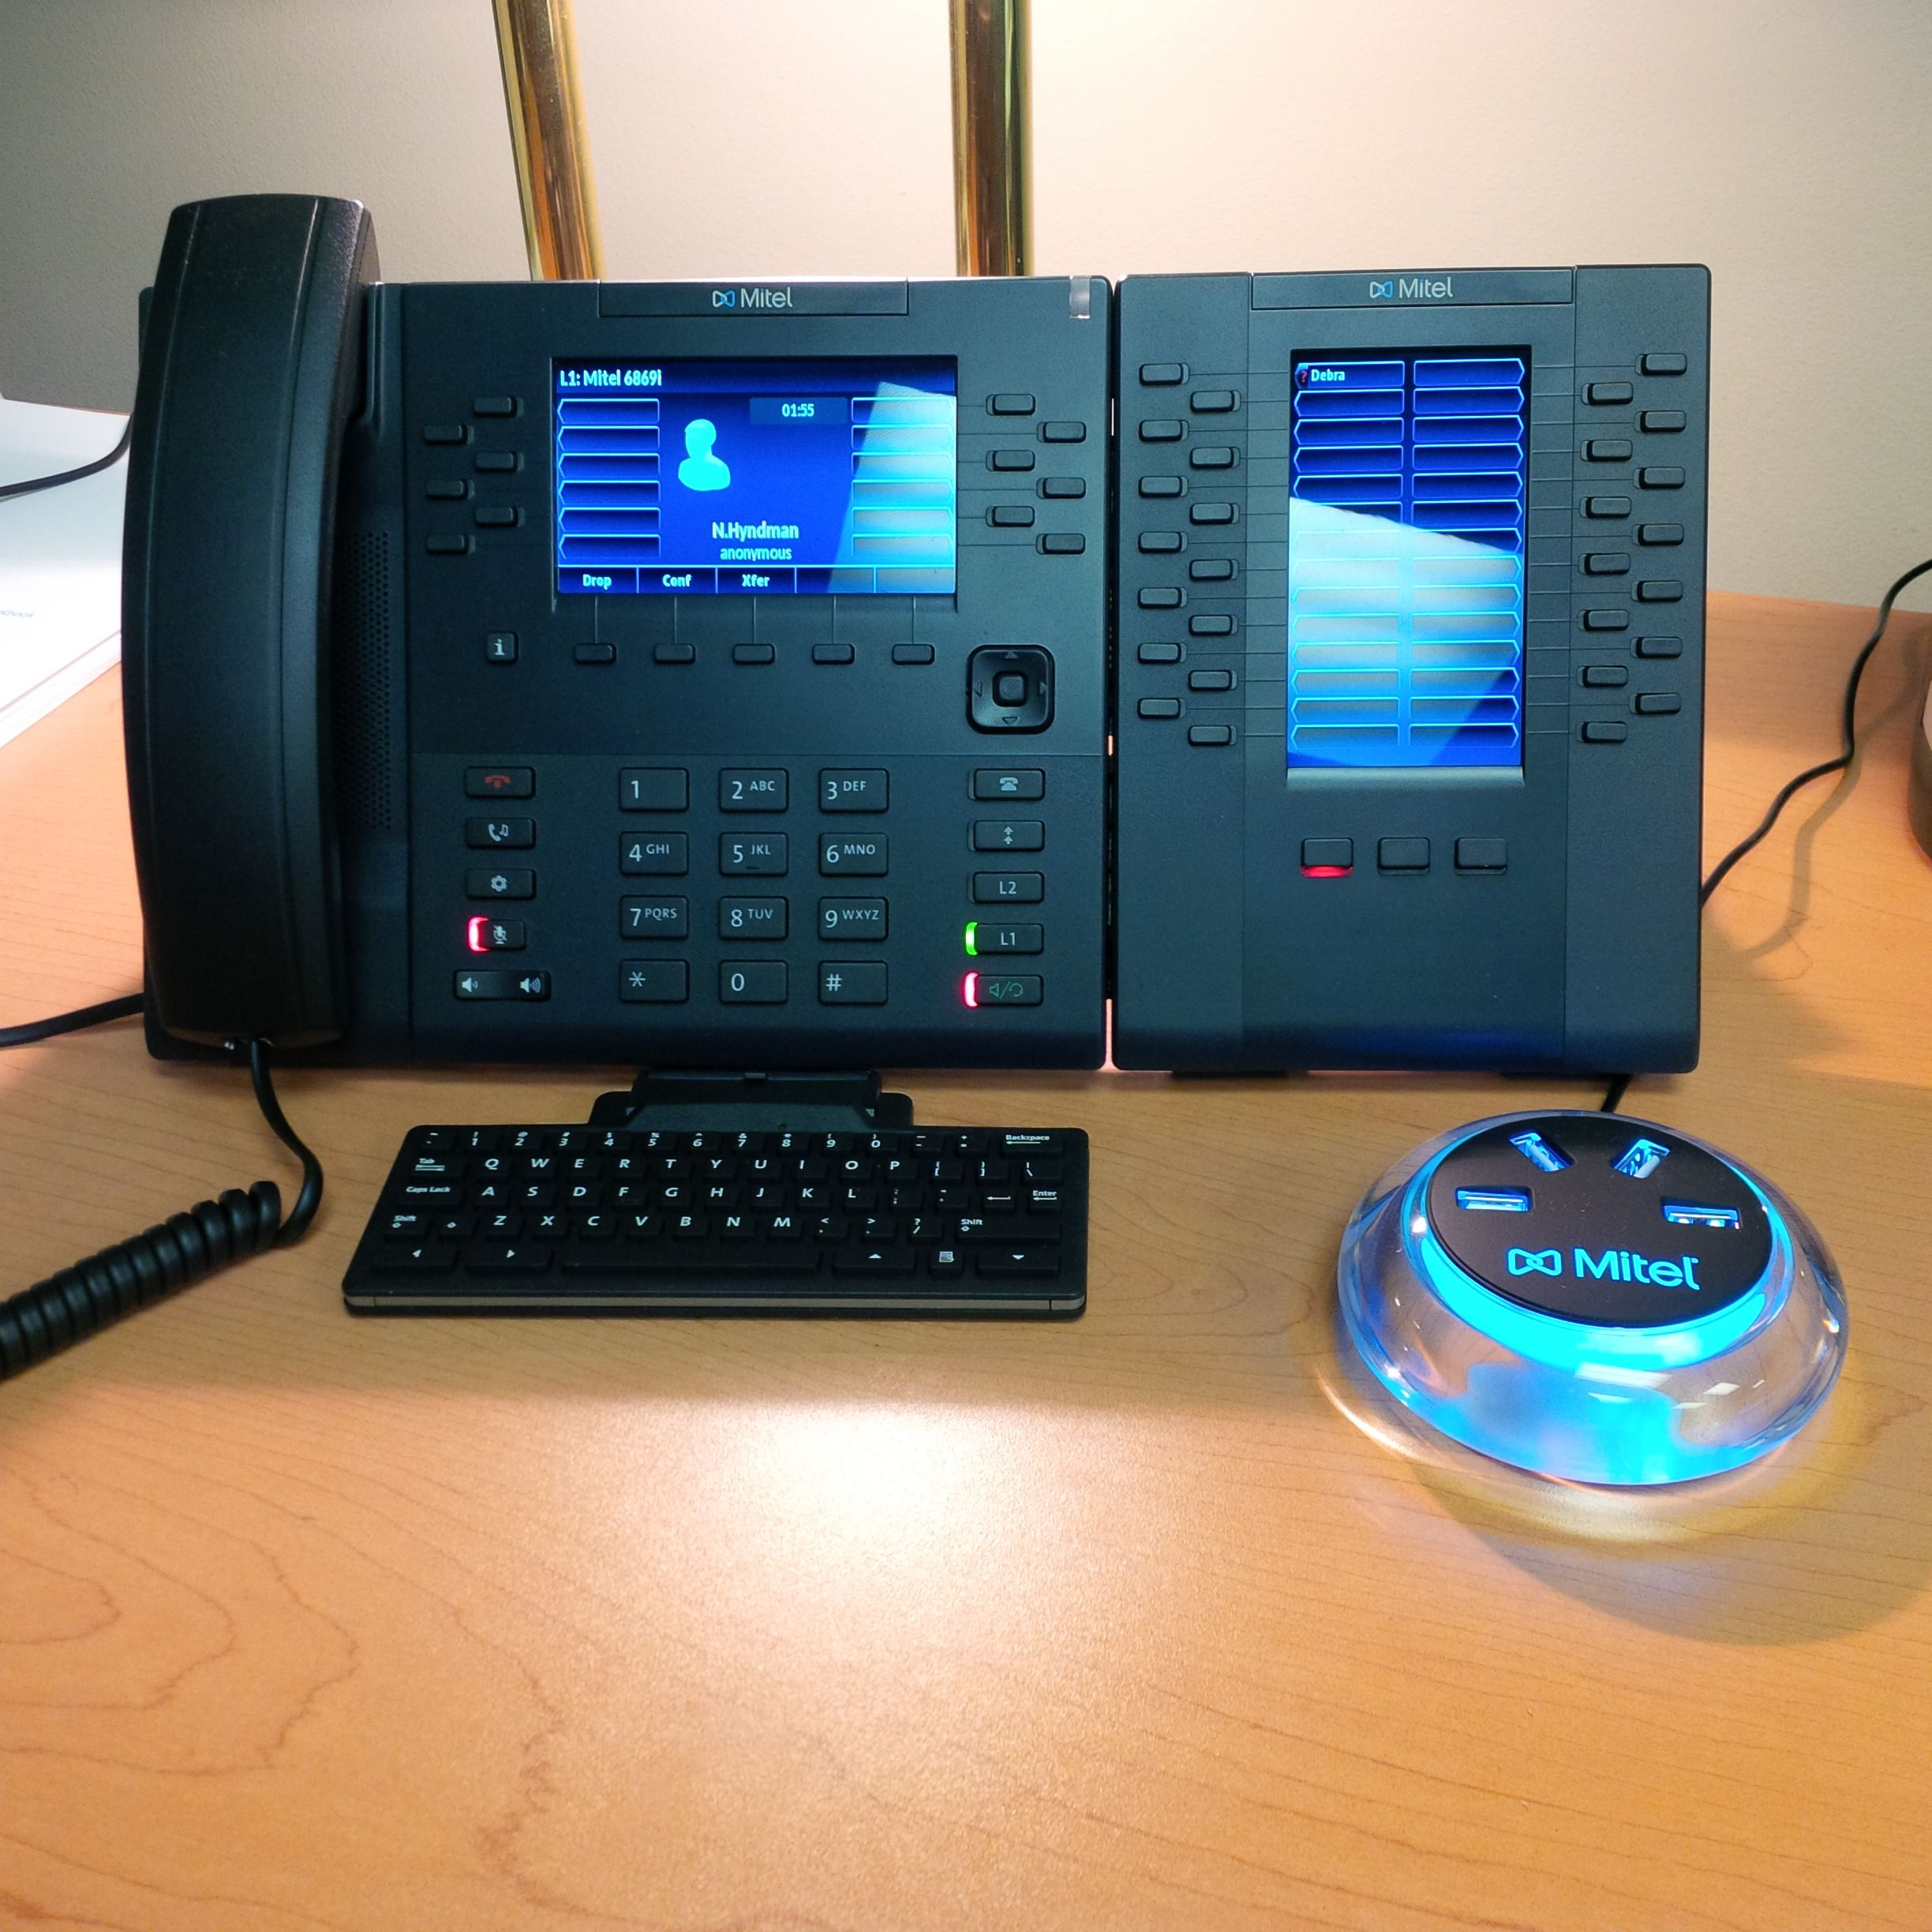 Check-out my @Mitel 6869 IP Phone with M685 DSS/BLF Module